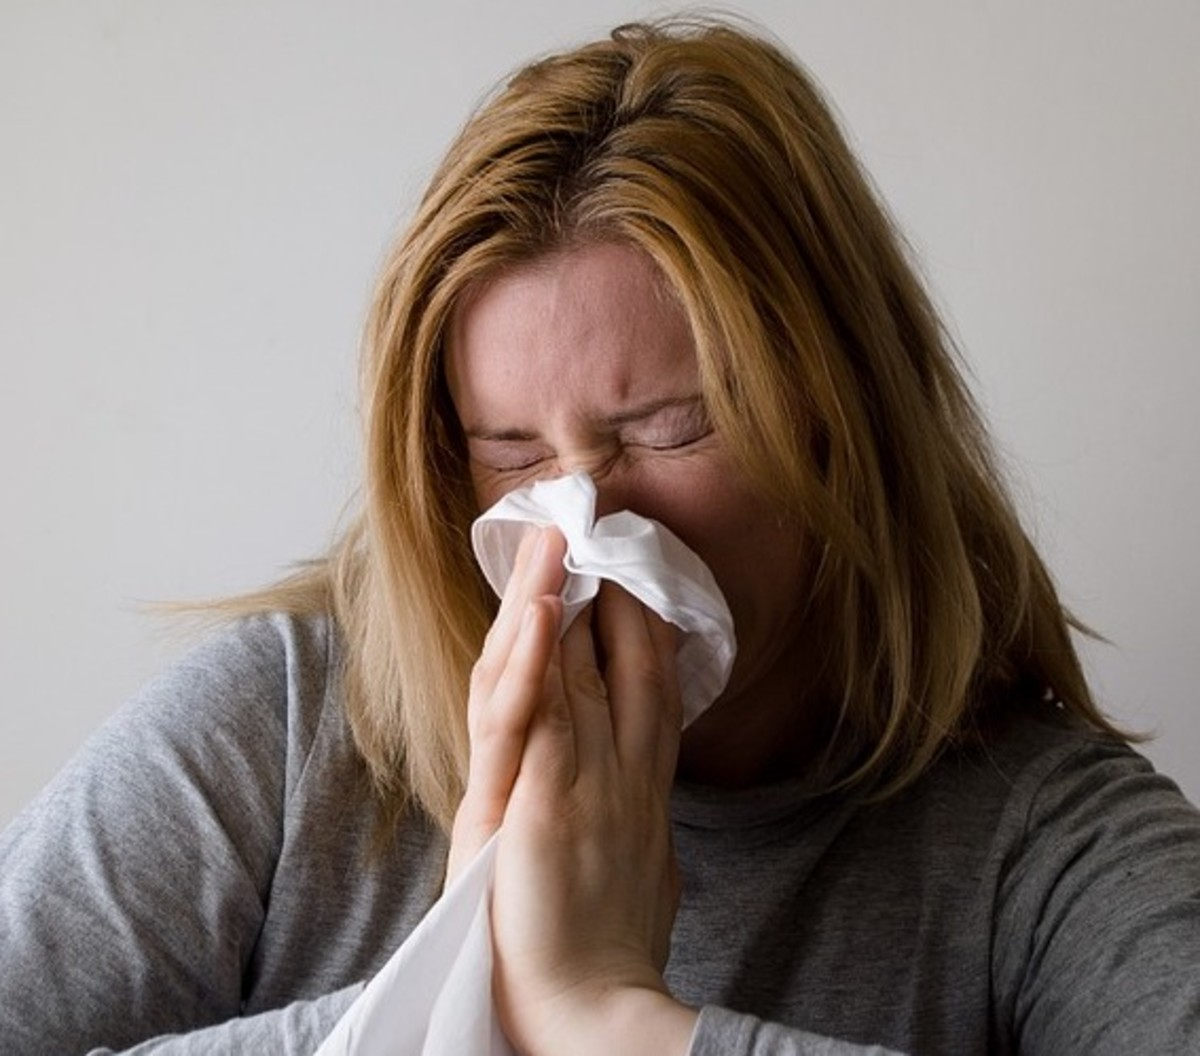 Having a cold is no fun, and all of the common remedies are bogus. Read below to find out what you should and shouldn't be doing to treat your cold.